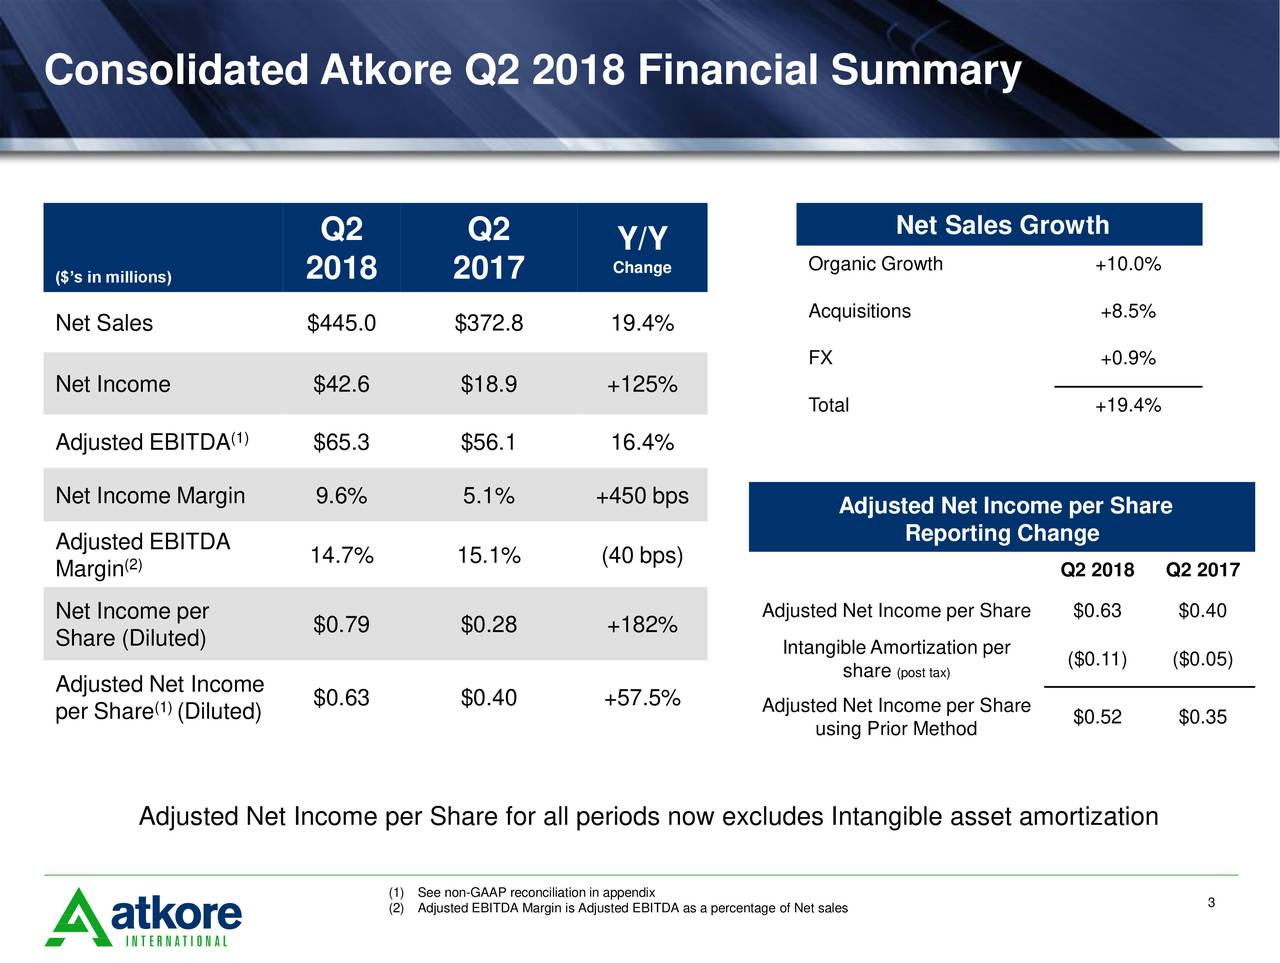 Q2 Q2 Net Sales Growth Y/Y ($'s in millions) 2018 2017 Change Organic Growth +10.0% Net Sales $445.0 $372.8 19.4% Acquisitions +8.5% FX +0.9% Net Income $42.6 $18.9 +125% Total +19.4% Adjusted EBITDA (1) $65.3 $56.1 16.4% Net Income Margin 9.6% 5.1% +450 bps Adjusted Net Income per Share Reporting Change Adjusted EBITDA 14.7% 15.1% (40 bps) Margin (2) Q2 2018 Q2 2017 Net Income per Adjusted Net Income per Share$0.63 $0.40 Share (Diluted) $0.79 $0.28 +182% IntangibleAmortization per ($0.11) ($0.05) Adjusted Net Income share(post tax) (1) $0.63 $0.40 +57.5% Adjusted Net Income per Share per Share (Diluted) using Prior Method $0.52 $0.35 Adjusted Net Income per Share for all periods now excludes Intangible asset amortization (1See non-GAAP reconciliation in appendix 3 (2Adjusted EBITDA Margin is Adjusted EBITDA as a percentage of Net sales